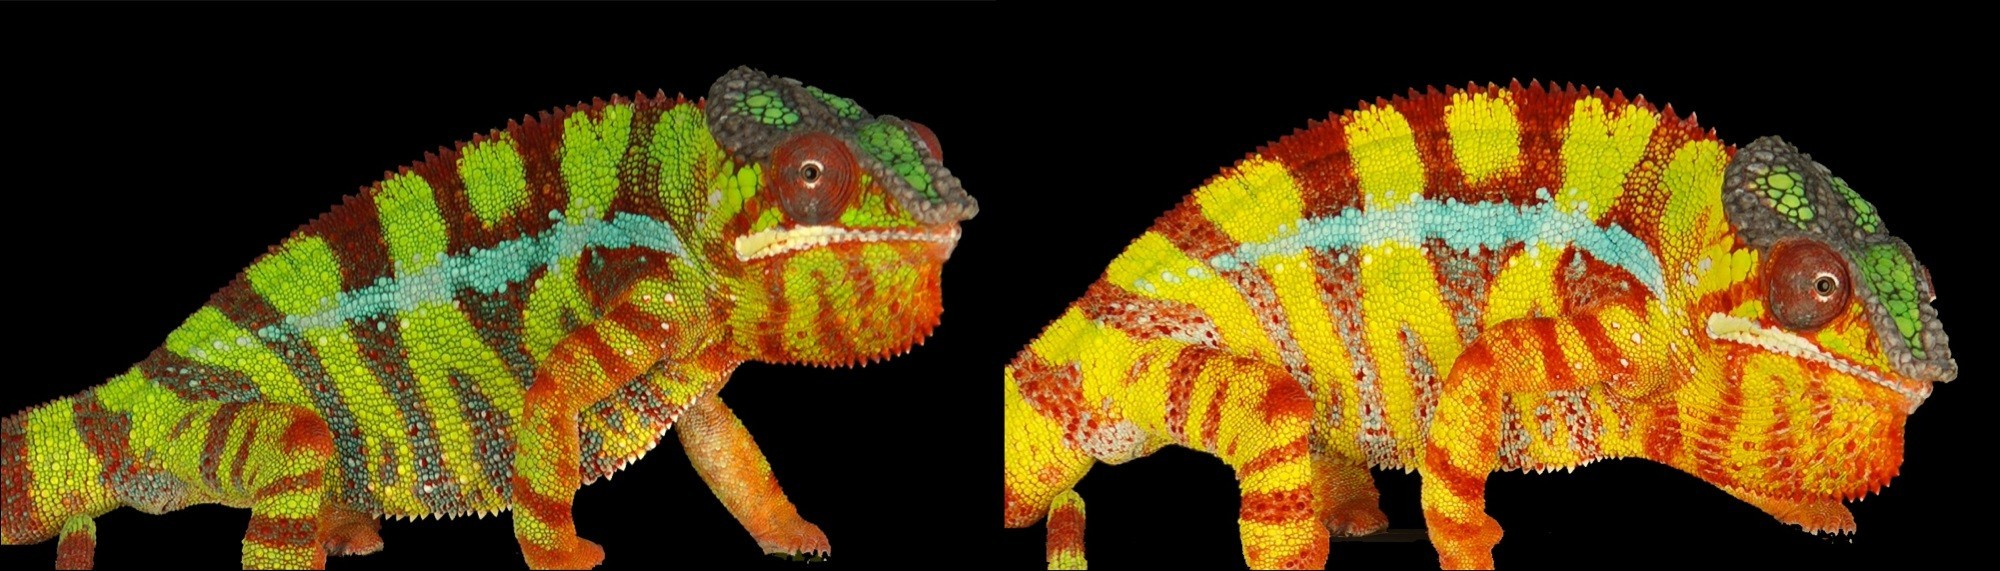 The secrets of color-changing chameleons revealed